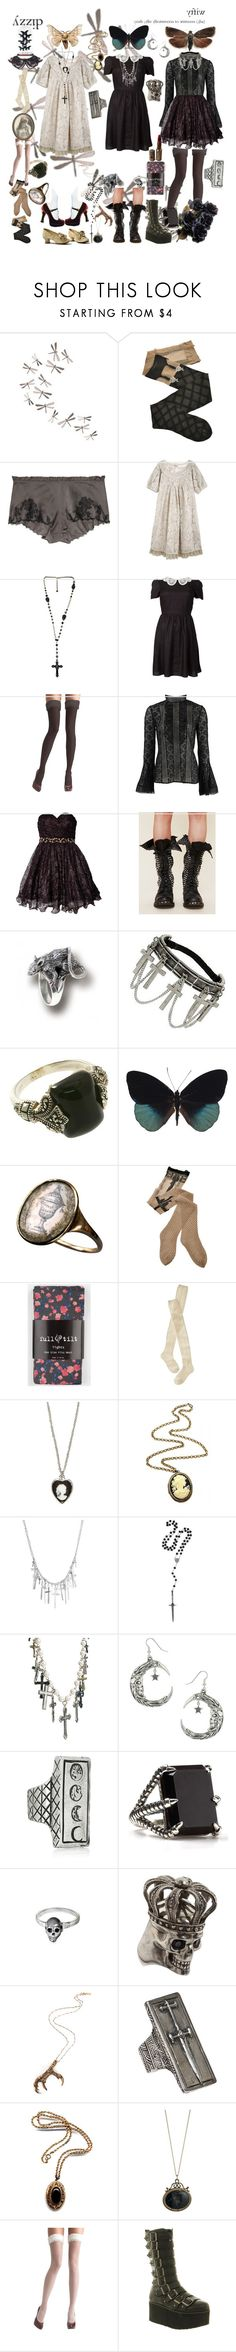 """Perhaps one day, my wish will come true & I'll turn into a pretty butterfly"" by kevlartunga ❤ liked on Polyvore featuring Umbra, Trasparenze, Carine Gilson, Tarina Tarantino, Via Spiga, Oscar de la Renta, Rare Opulence, Free People, Miss Selfridge and Tricot Comme des Garçons"